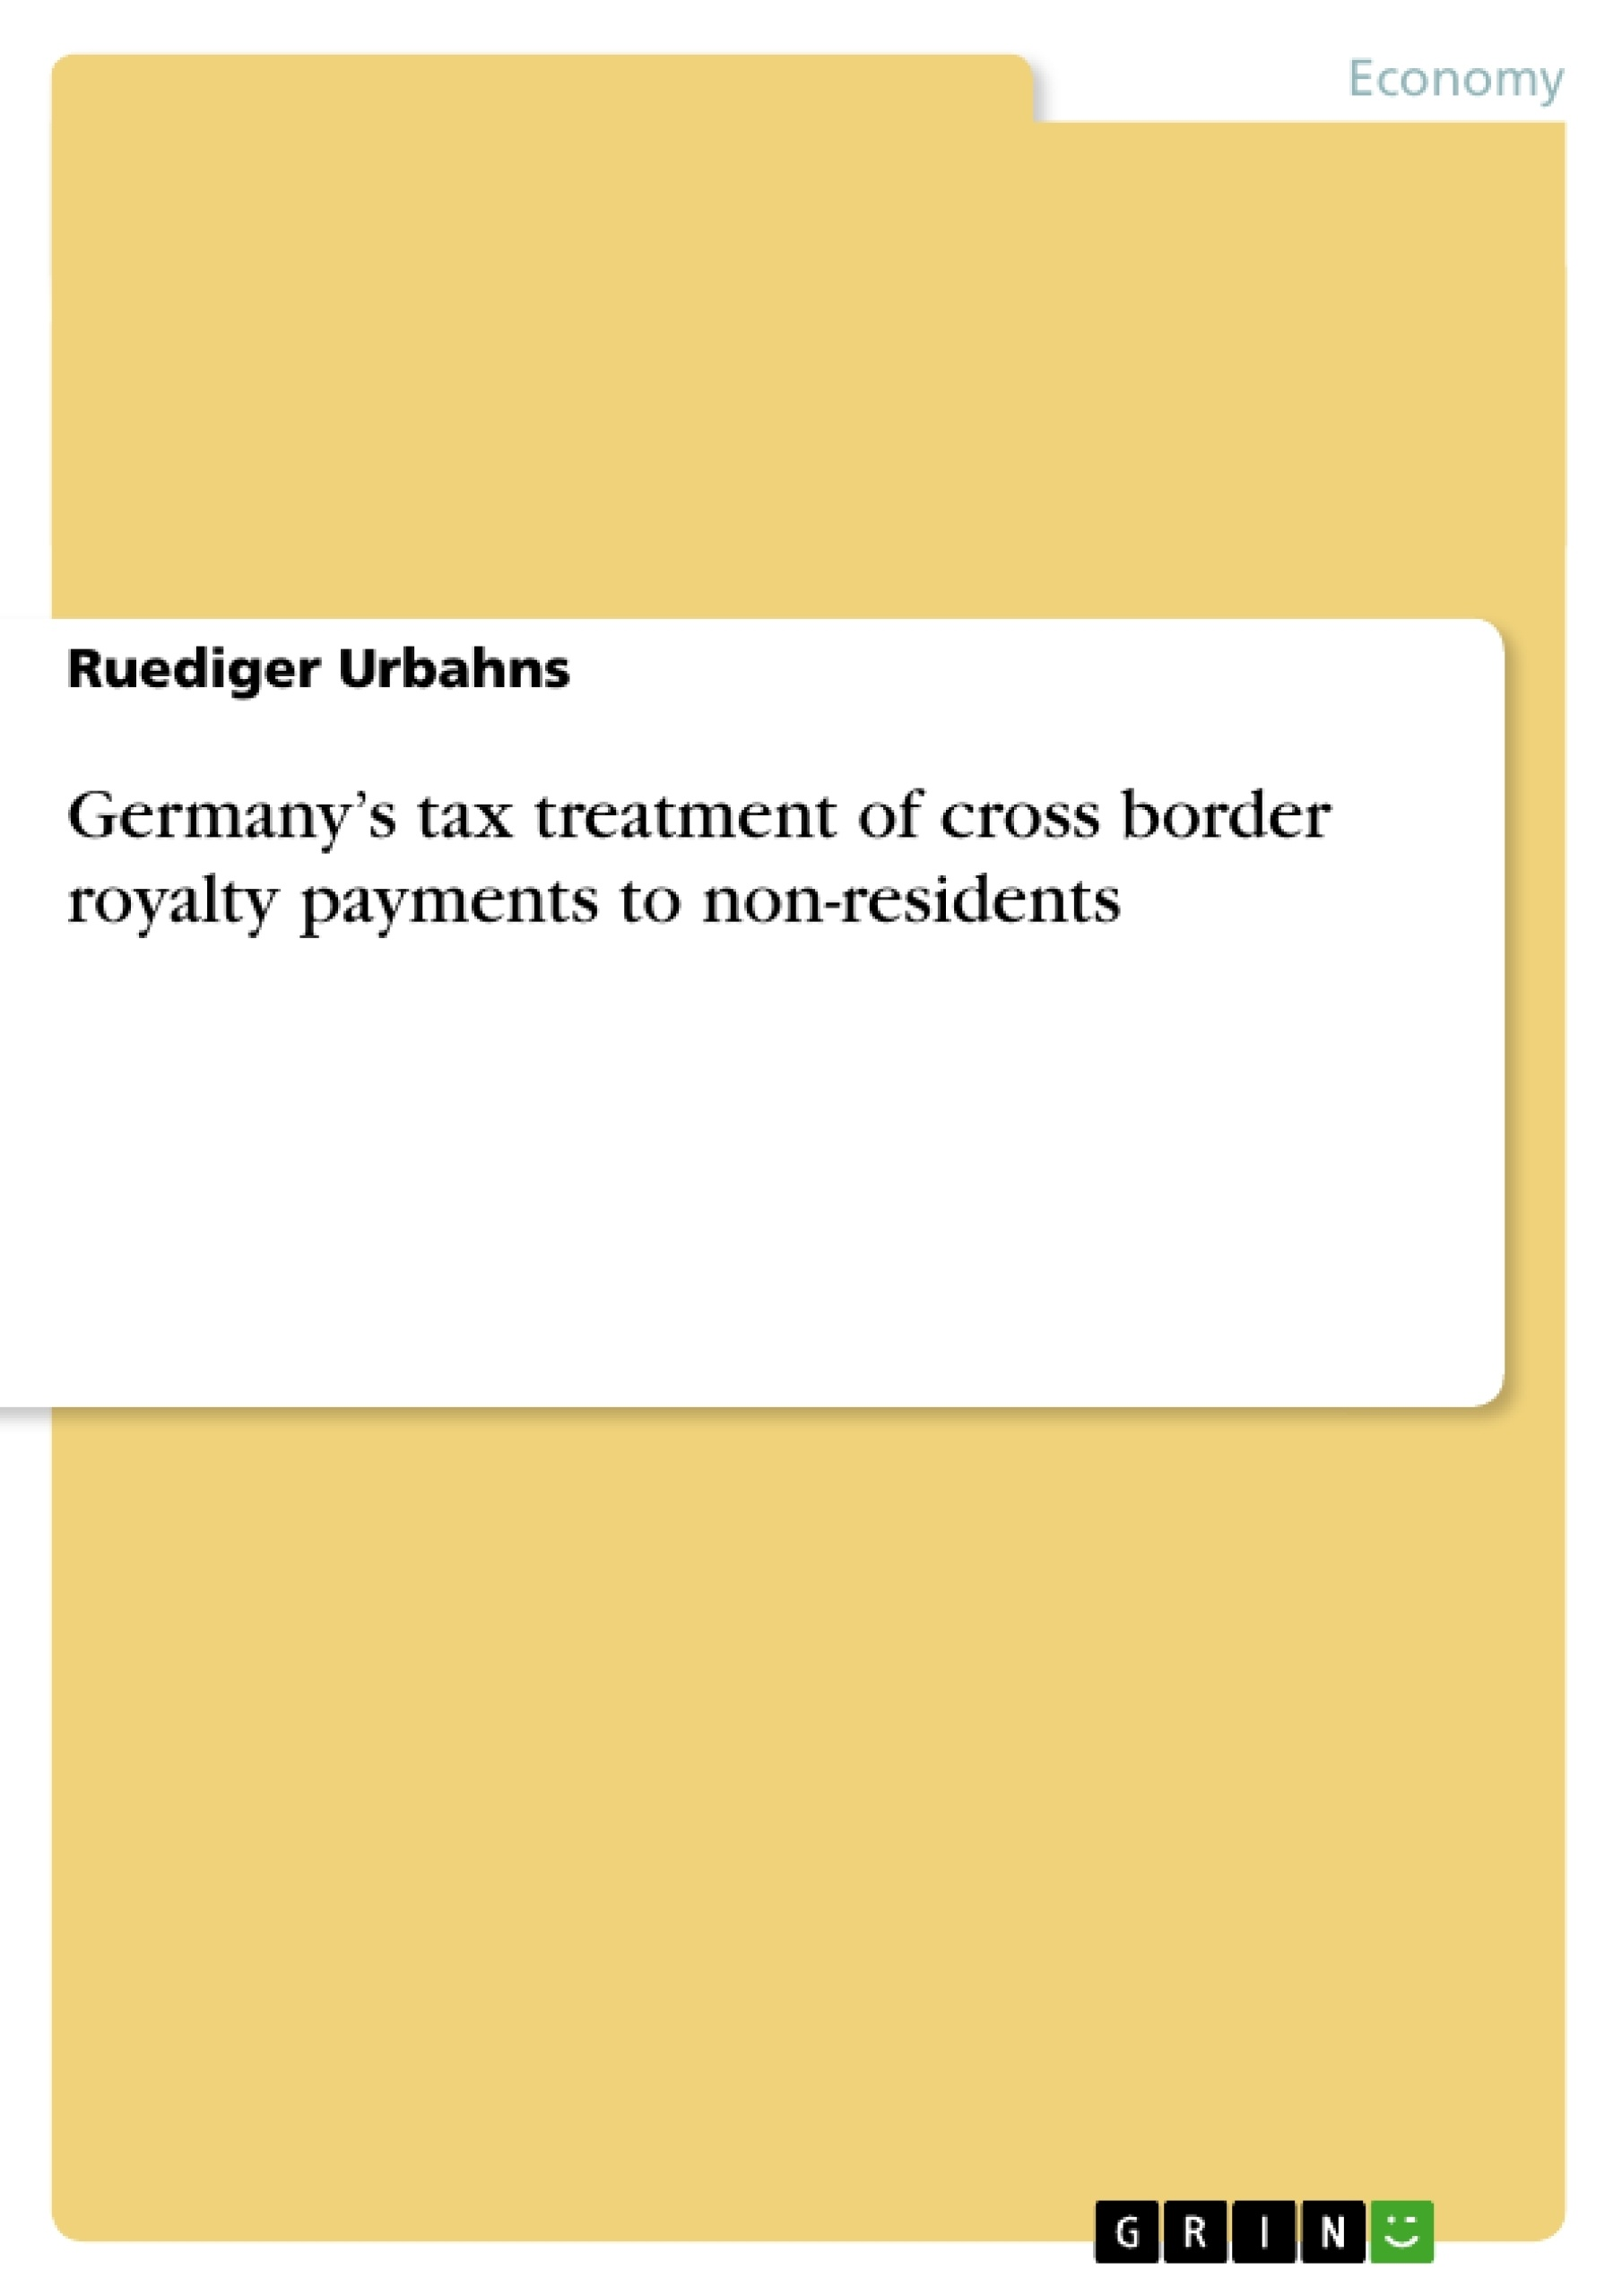 Título: Germany's tax treatment of cross border royalty payments to non-residents